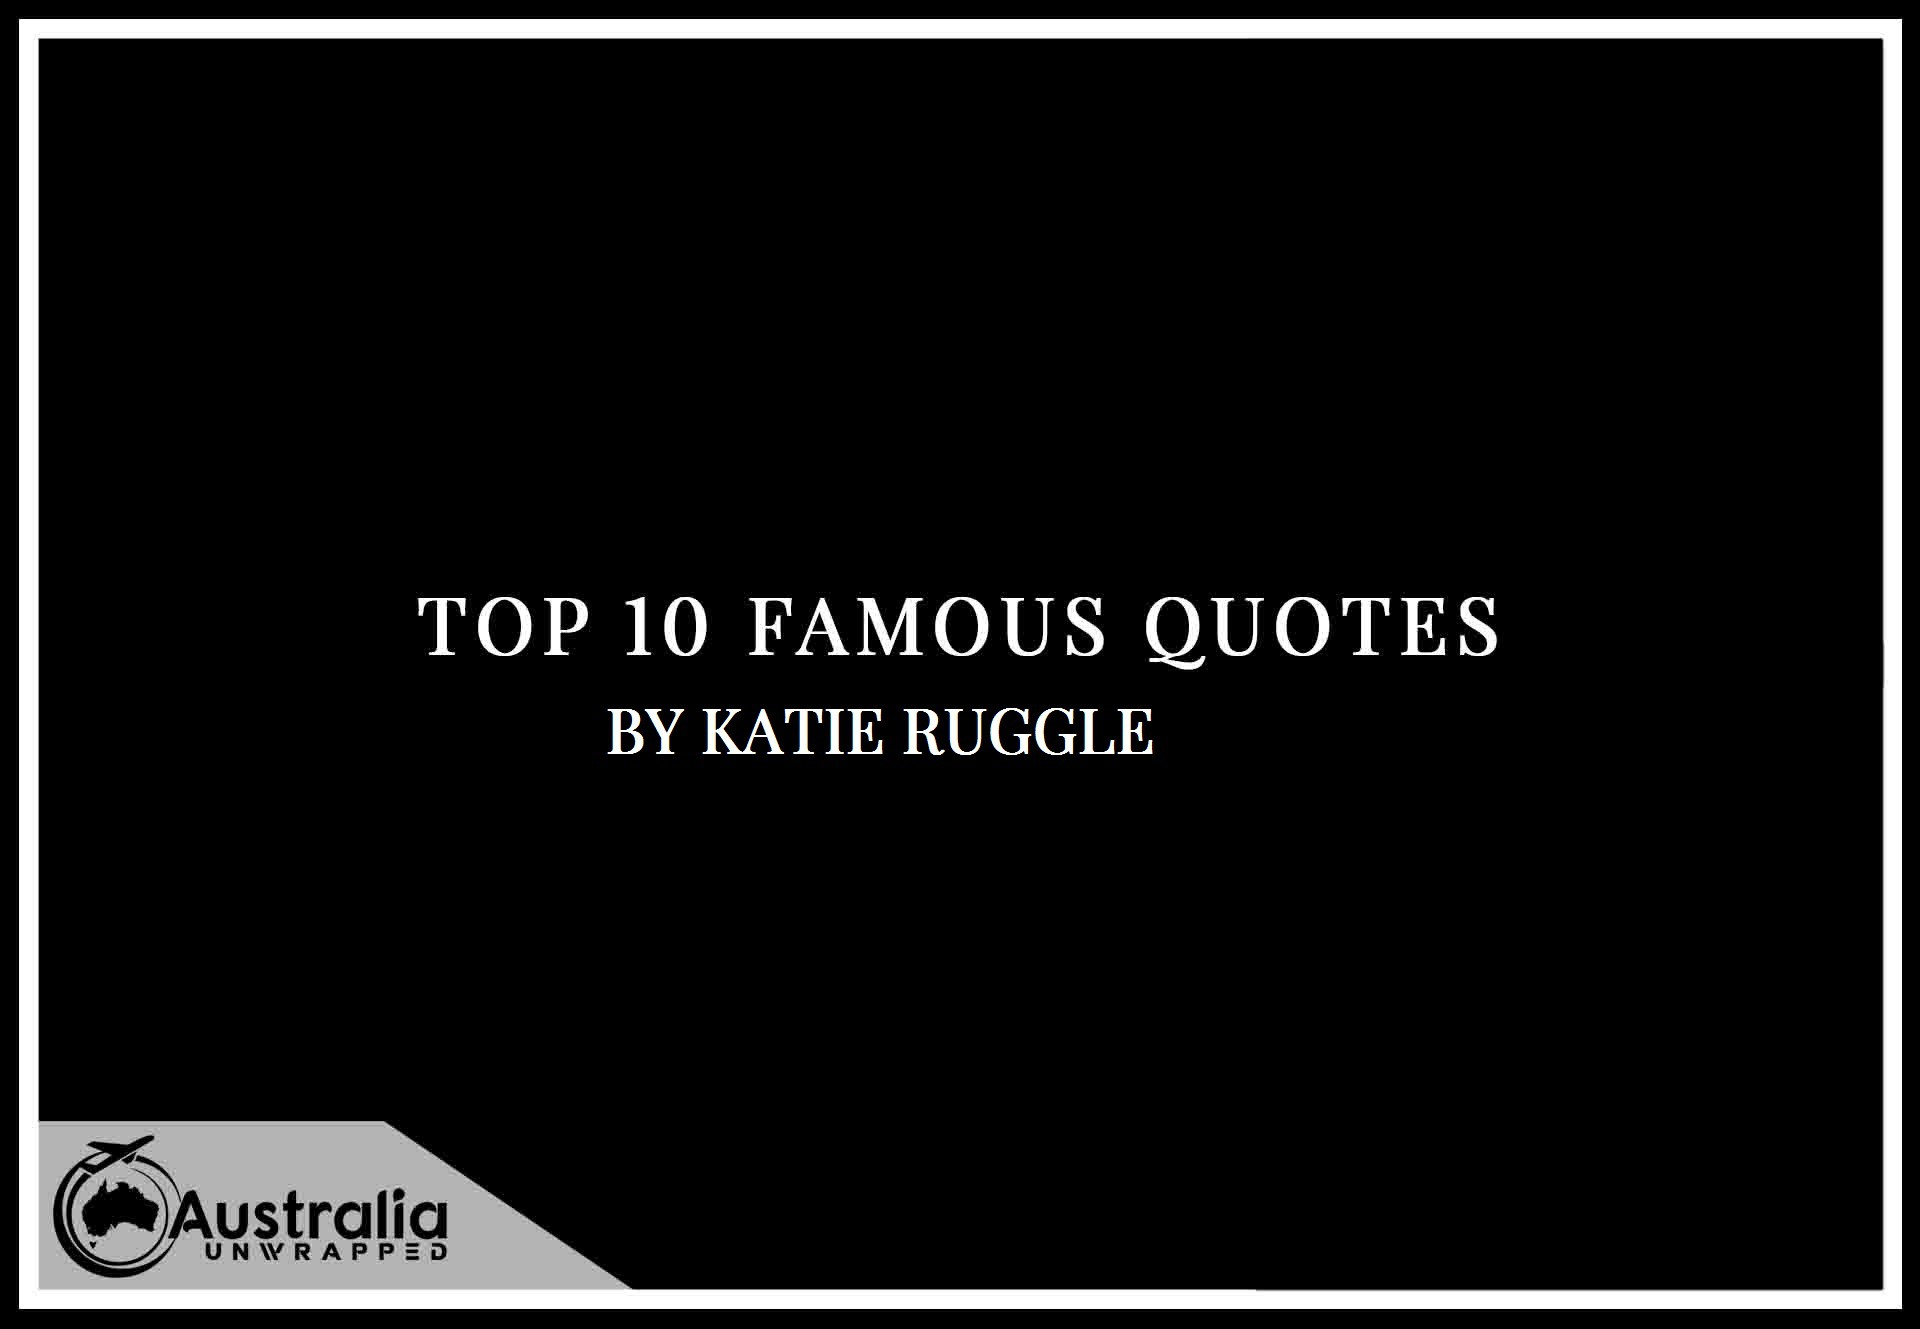 Katie Ruggle's Top 10 Popular and Famous Quotes